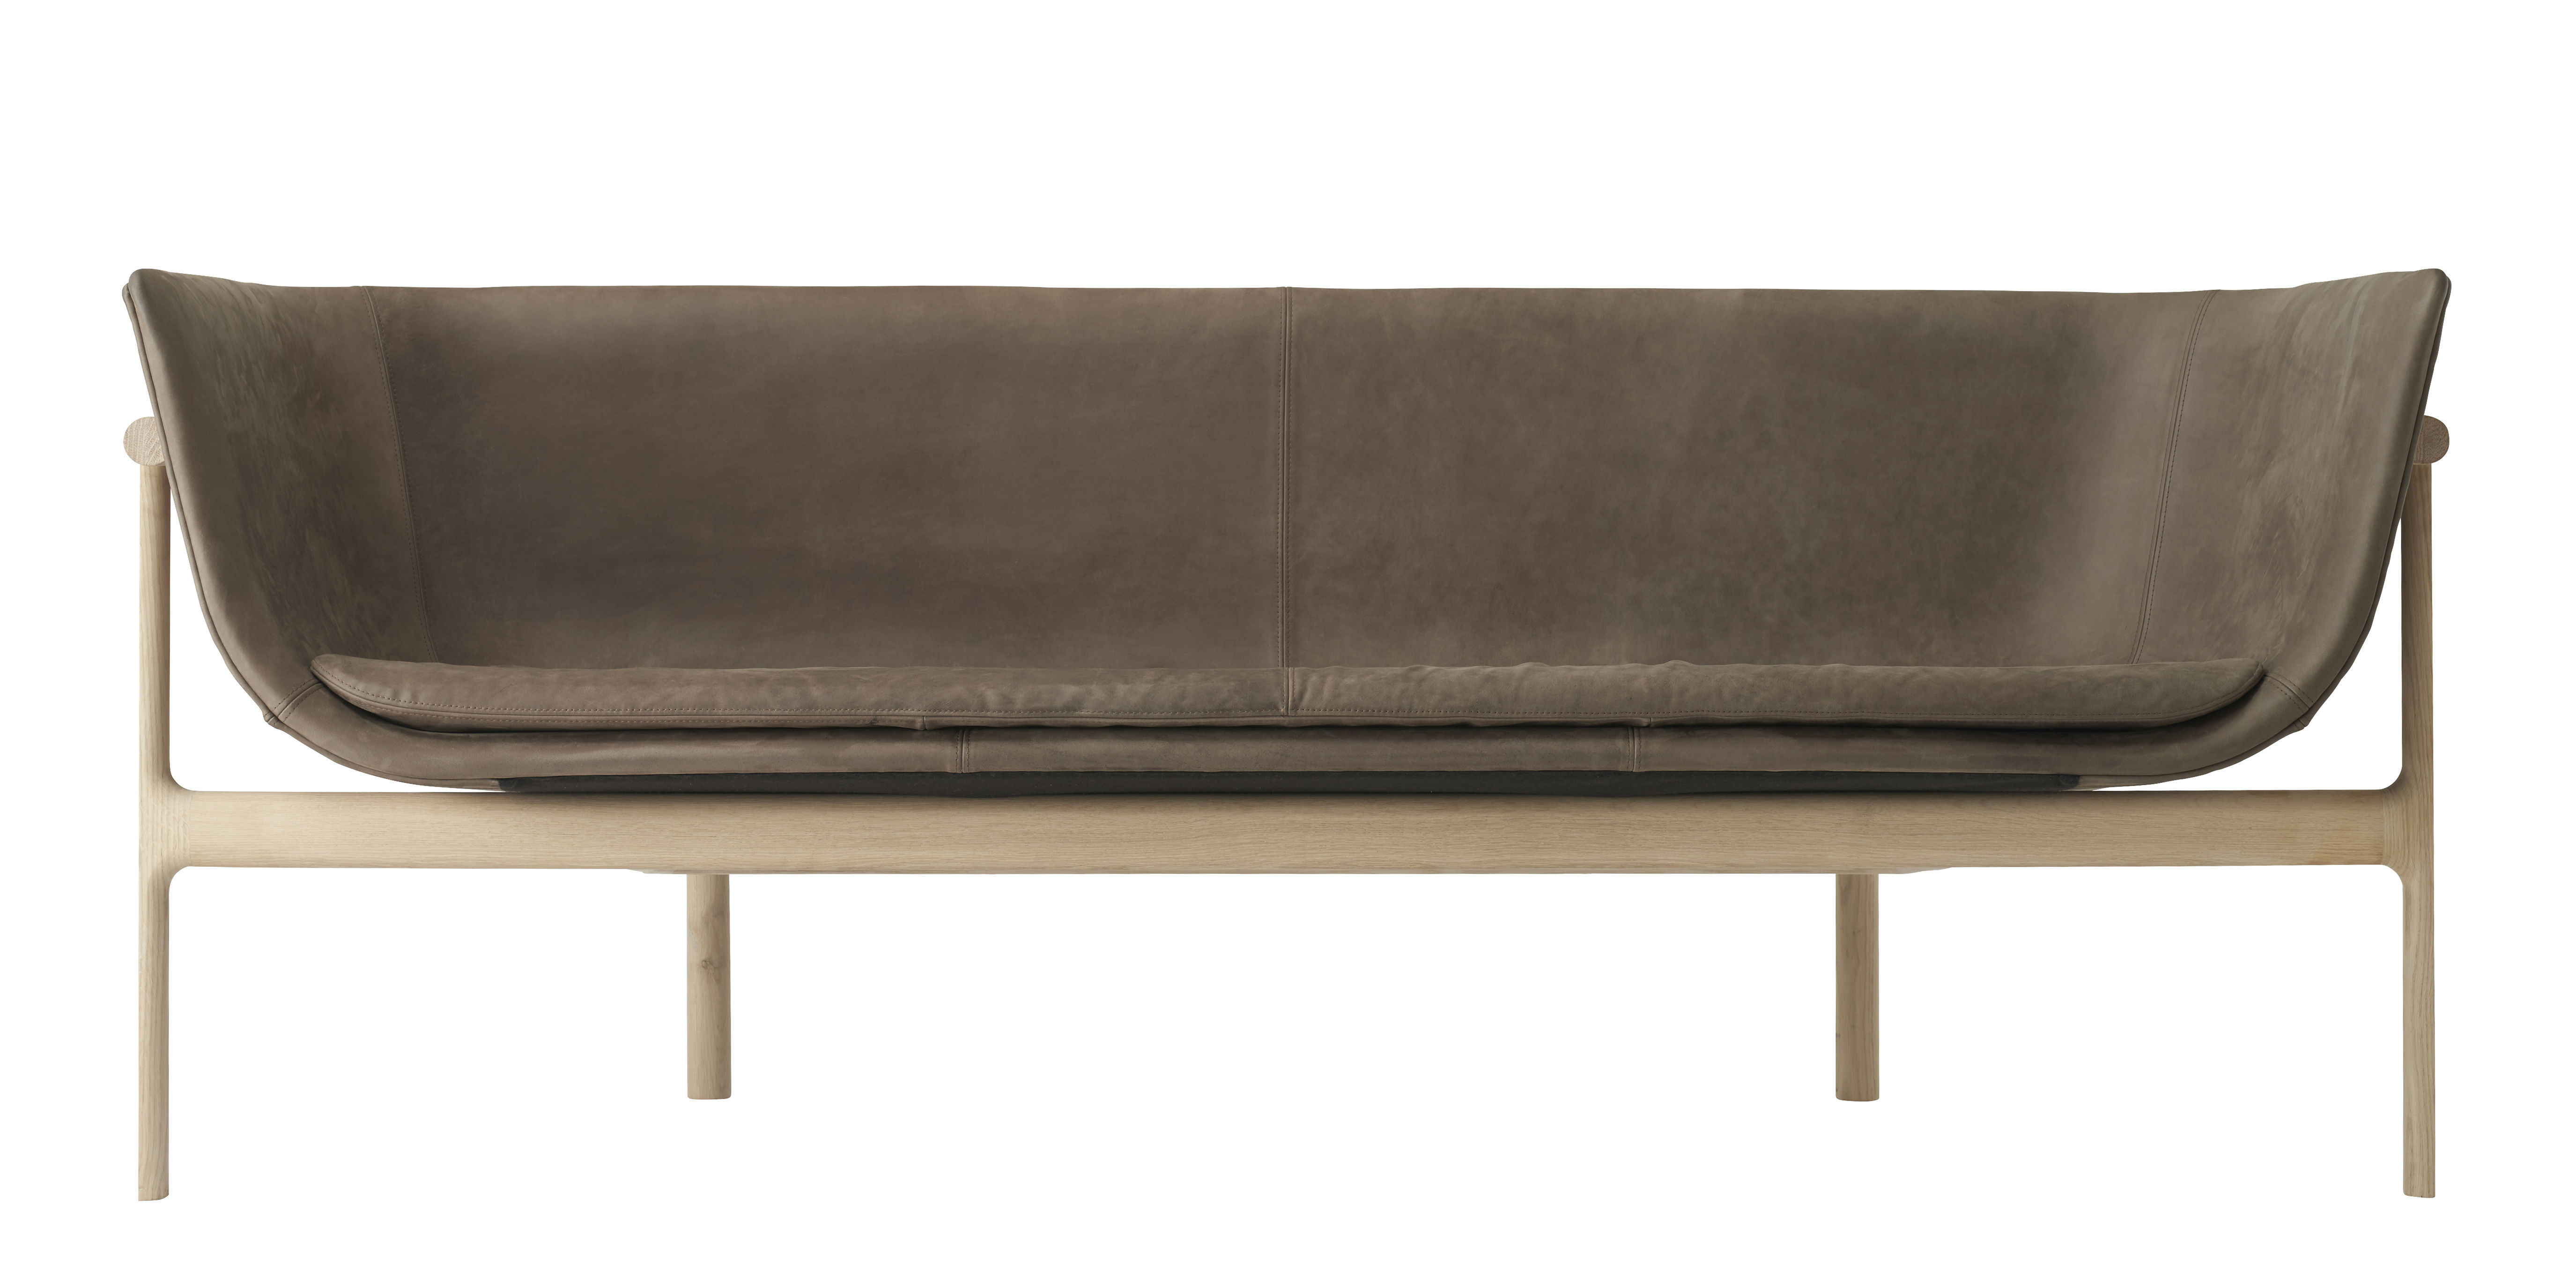 Furniture - Sofas - Tailor Straight sofa - Leather / L 180 cm by Menu - Brown leather/ Wood - Foam, Leather, Solid oak